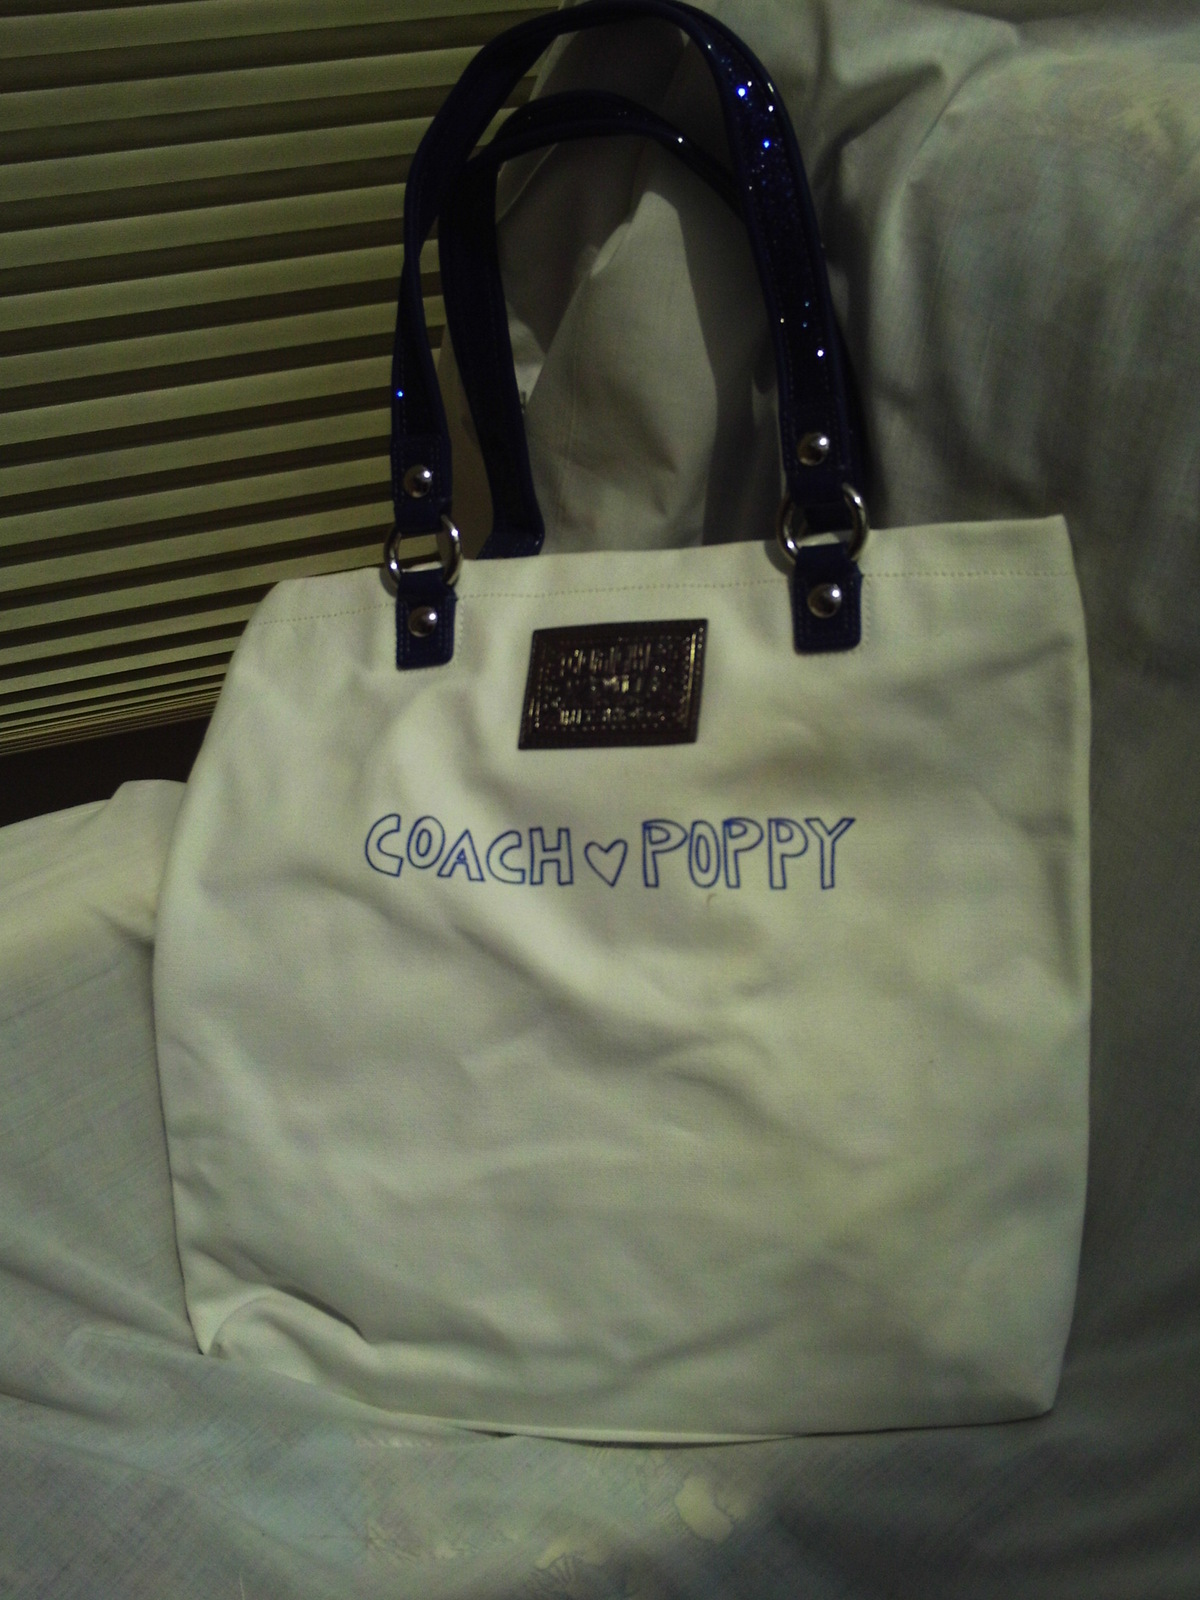 NWT/COACH/POPPY CHAN/BLUEBERRY/TOTE/HANDBAG/BAG/PURSE image 2